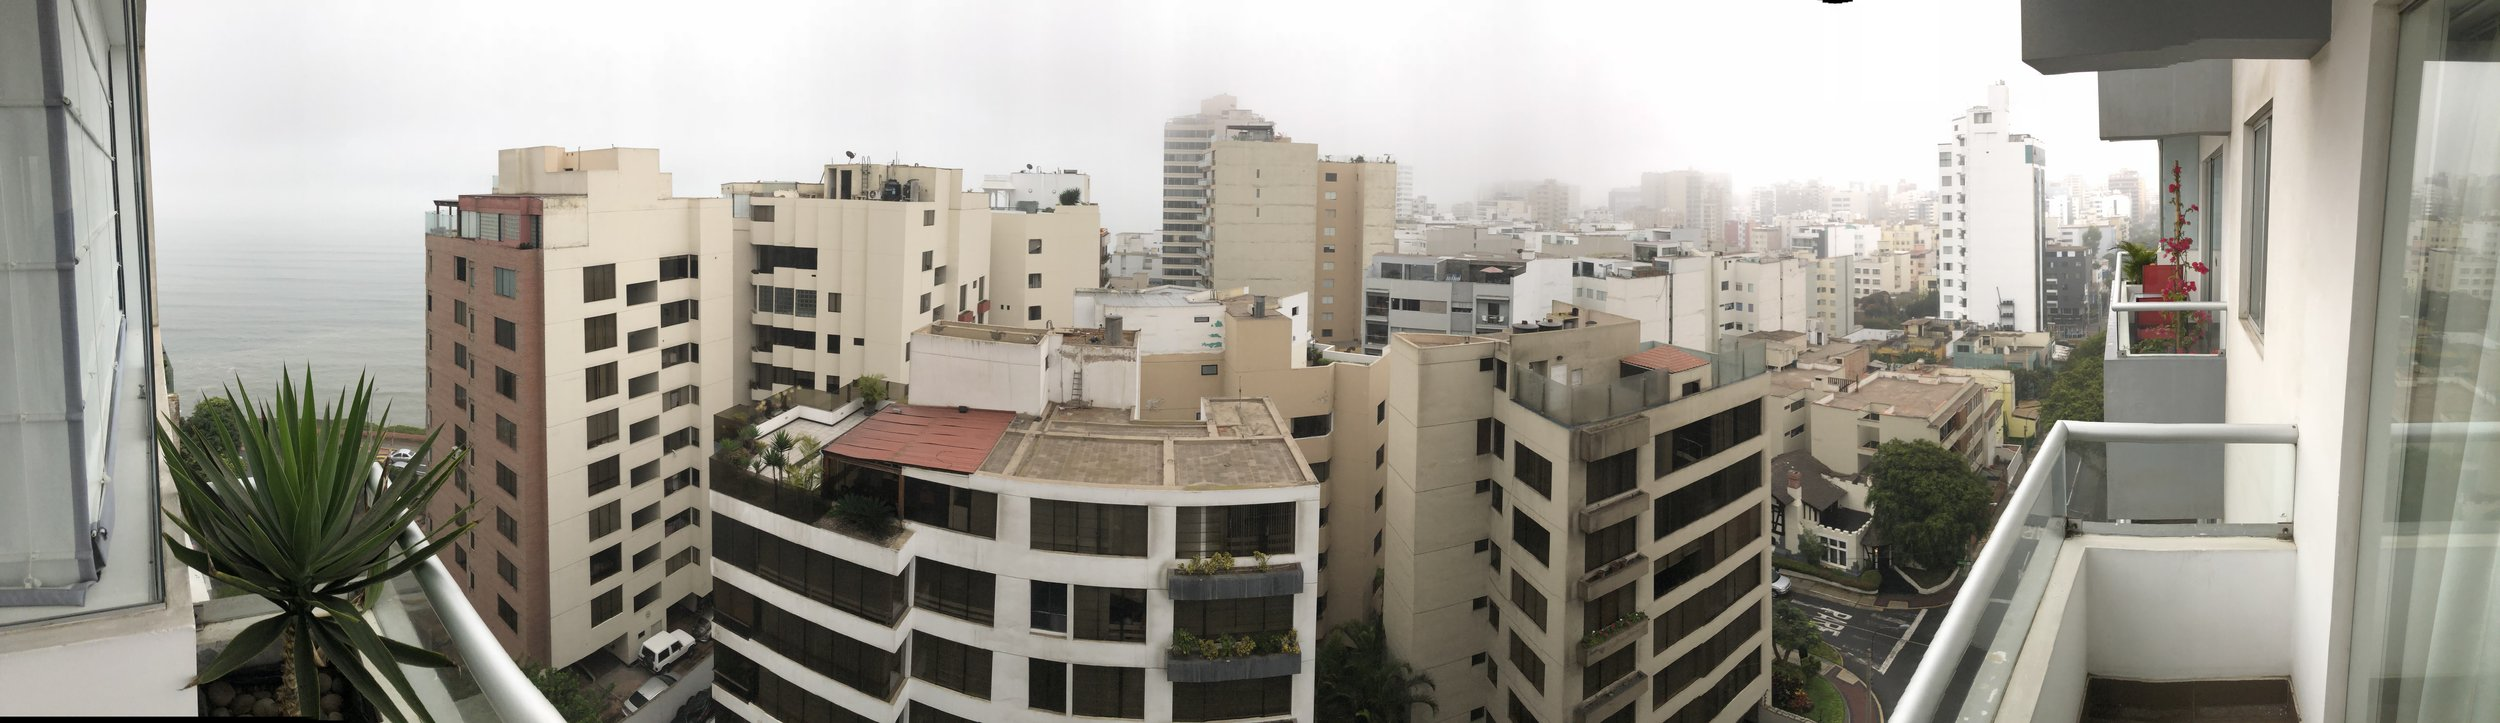 The Skyline in Miraflores from My Balcony